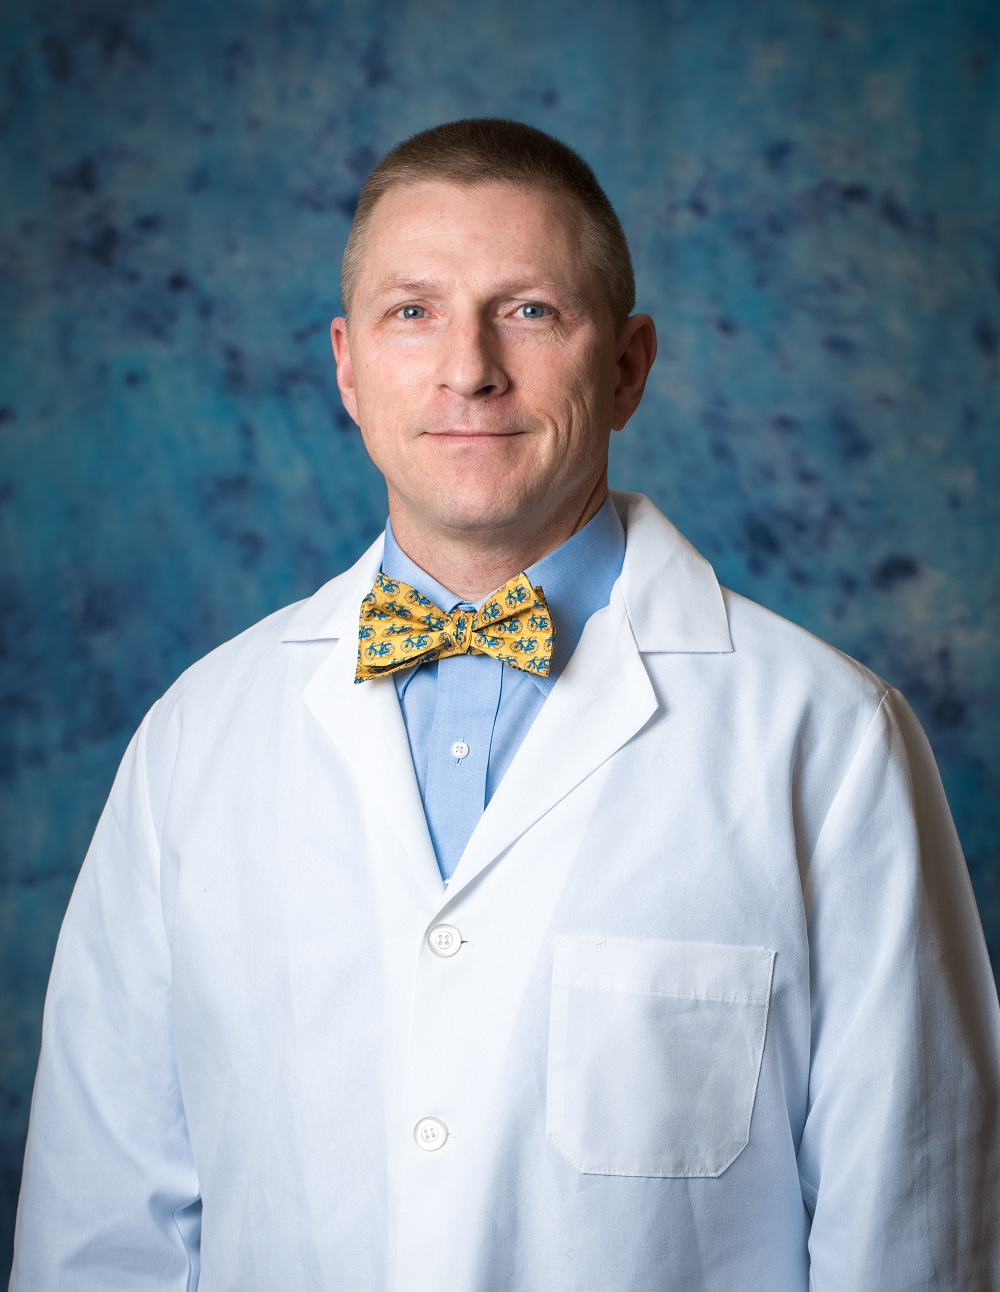 Matthew D. Bridges, MD of the Surgical Team at Roane Surgical Group